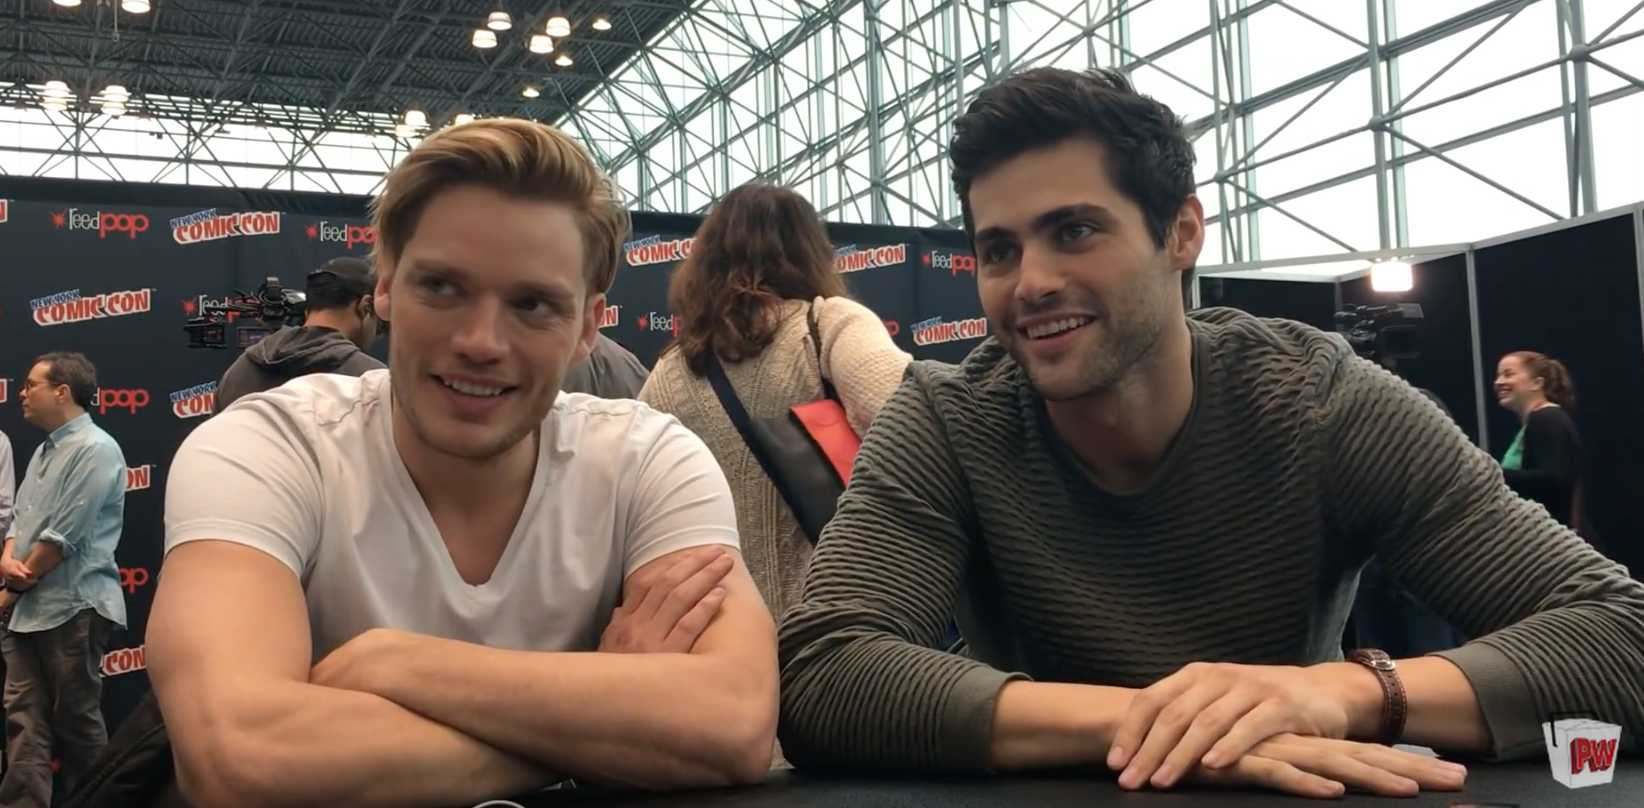 The Shadowhunters Cast Teases A Darker, More Intense Season 2 | Shadowhunters cast